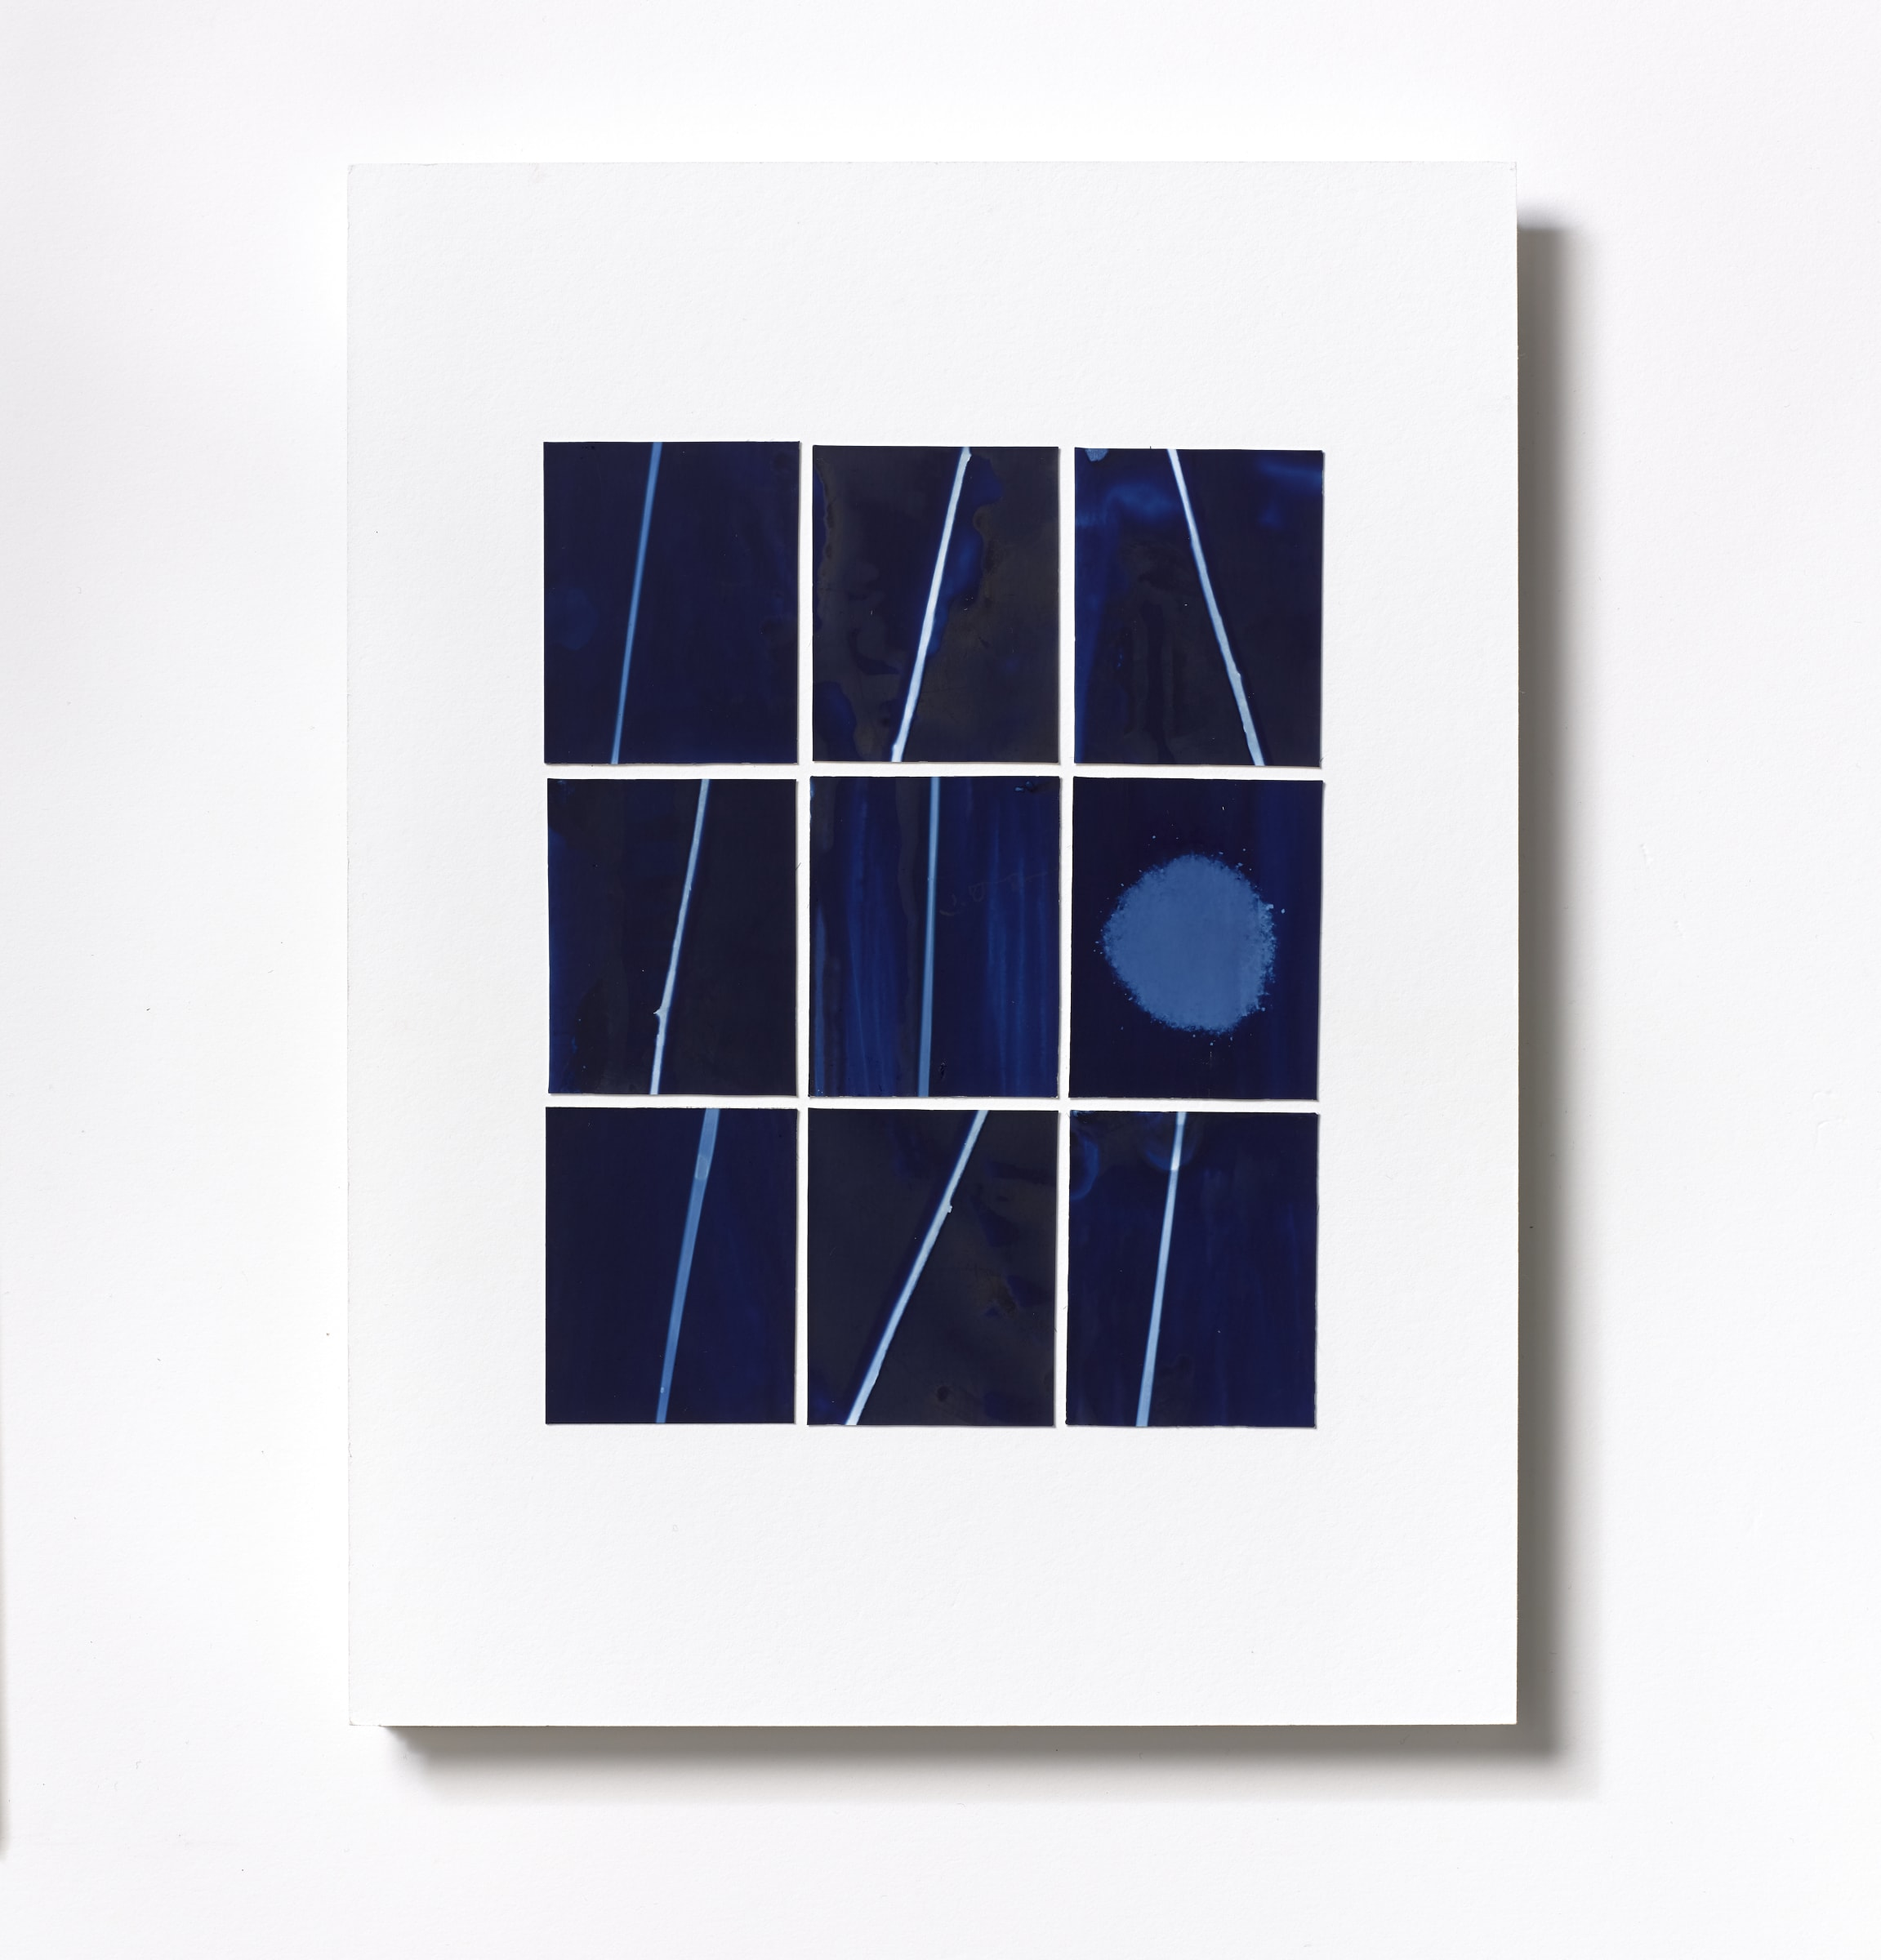 """<span class=""""link fancybox-details-link""""><a href=""""/content/feature/125/artworks573/"""">View Detail Page</a></span><div class=""""medium"""">Cyanotype Collage of nine hand-painted 2 7/8"""" x 1 7/8"""" cyanotype photograms on a 12 x 9 inch 8-ply museum board<br /> Print only<br /> Unique</div> <div class=""""dimensions"""">30.5 x 22.9 cm<br /> 12 x 9 in</div>"""